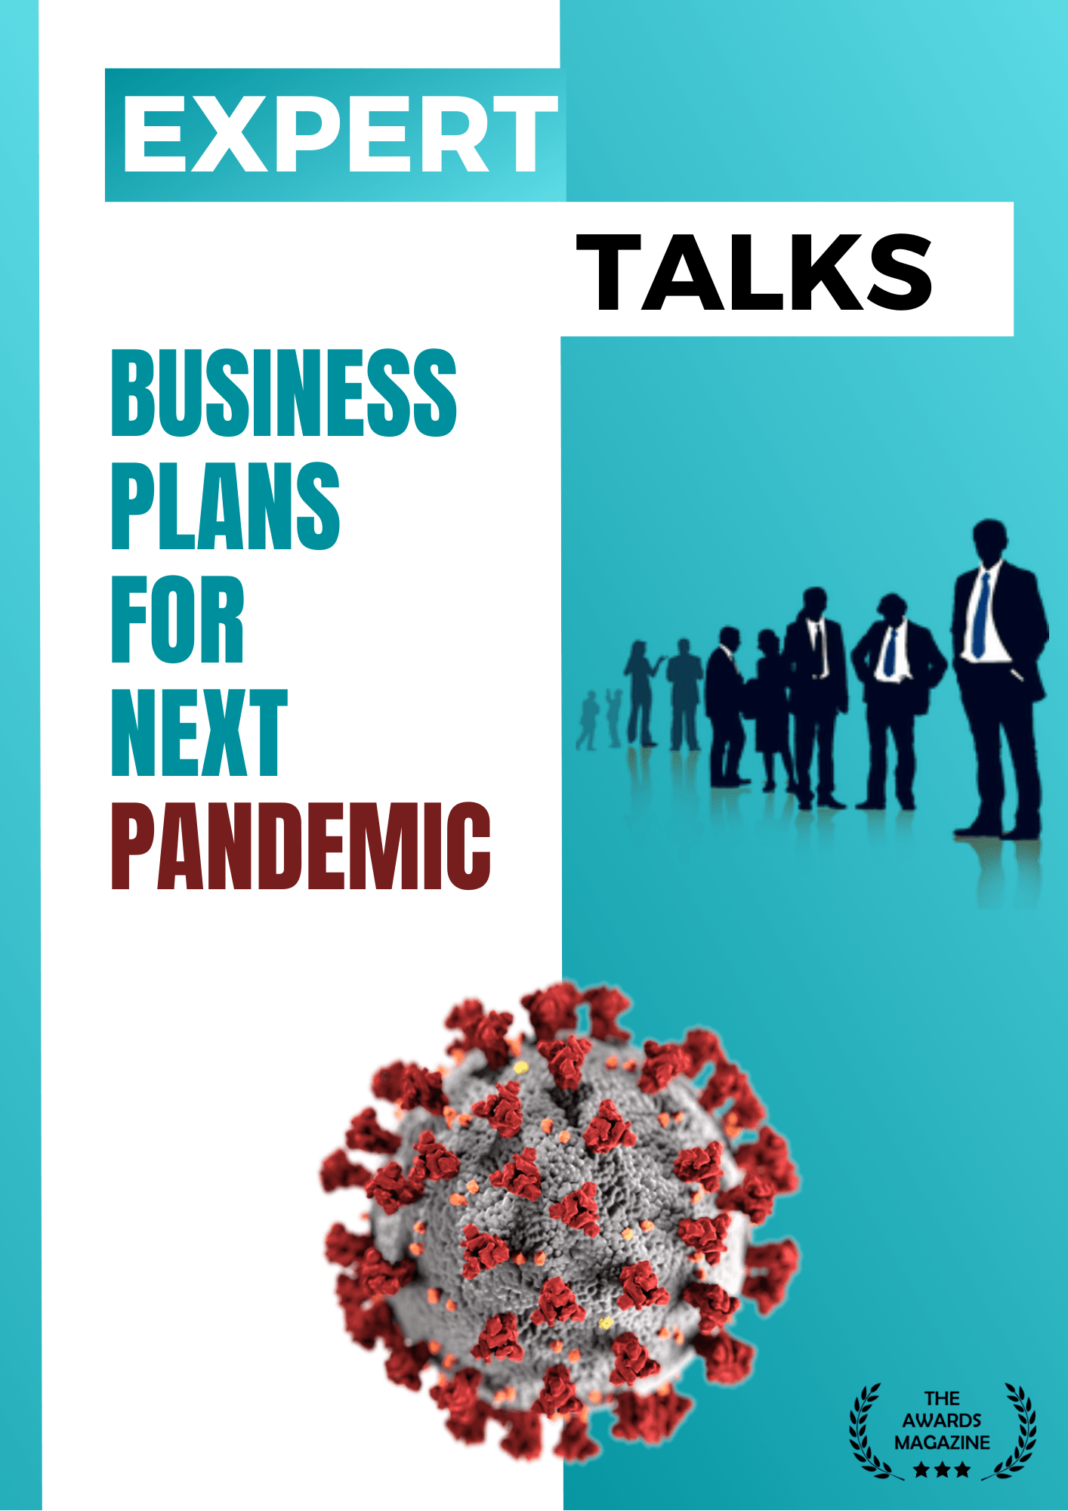 How Business should prepare for the next pandemic?